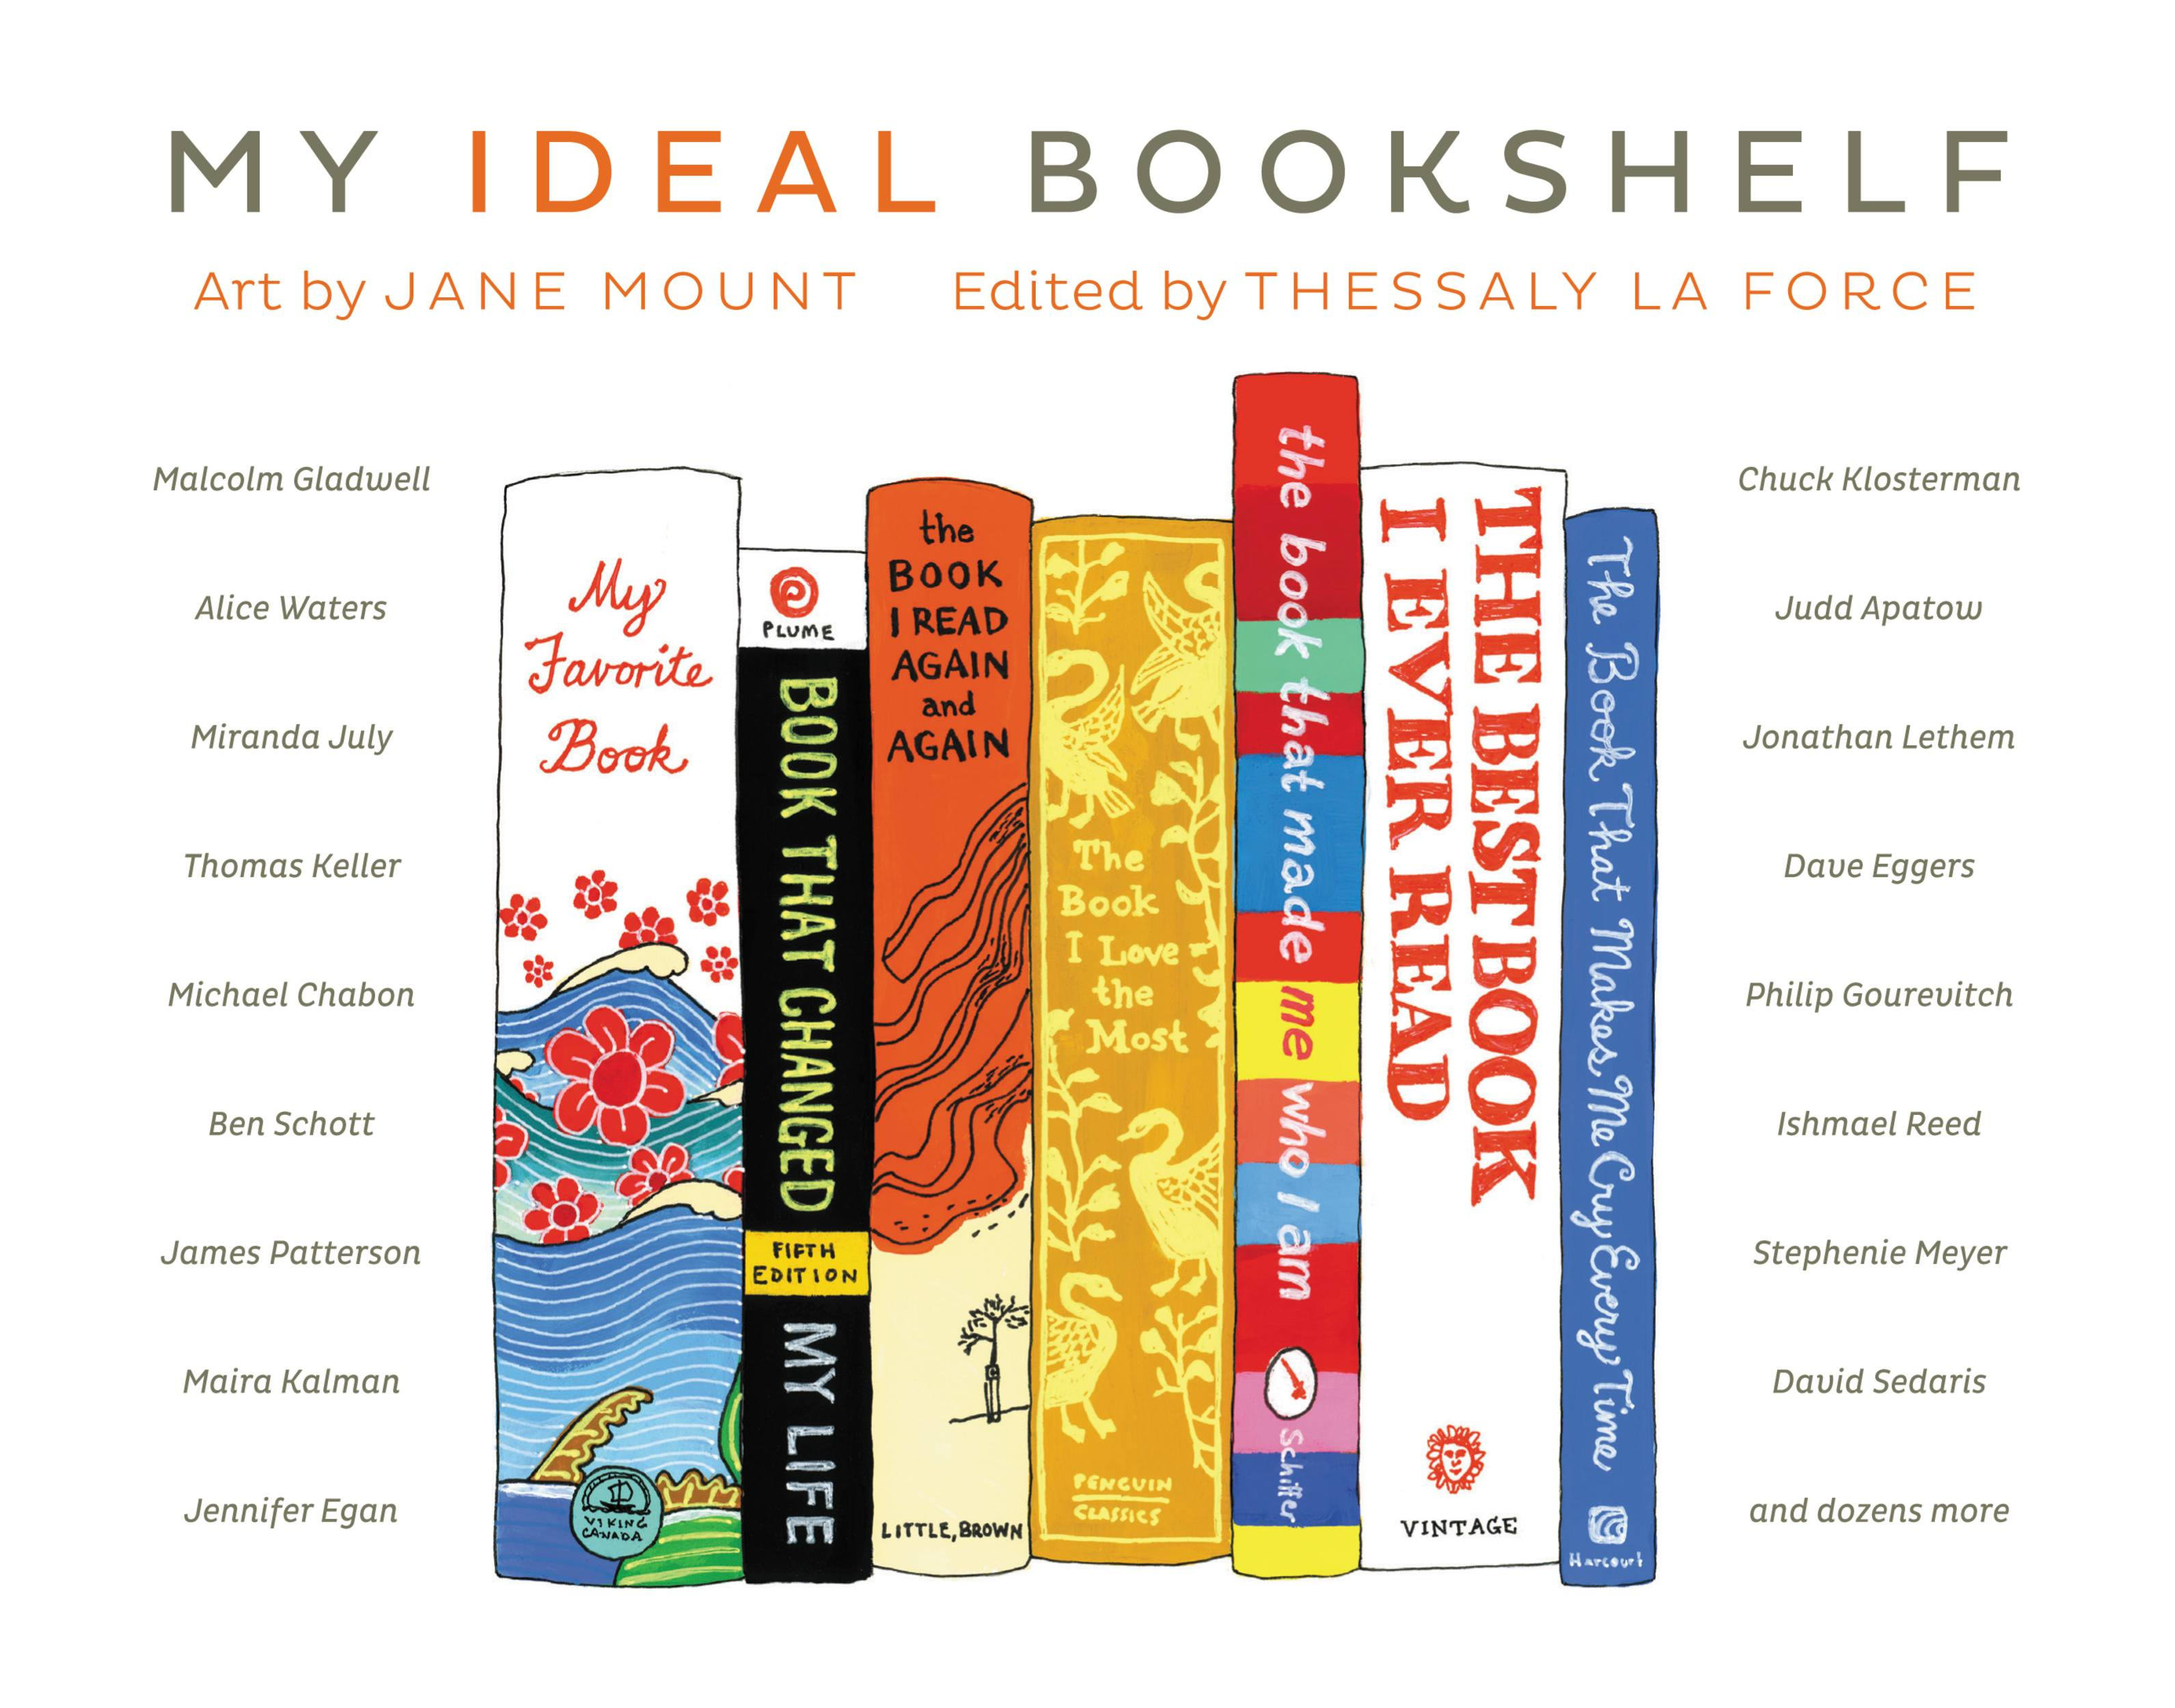 My Ideal Bookshelf By: Jane Mount